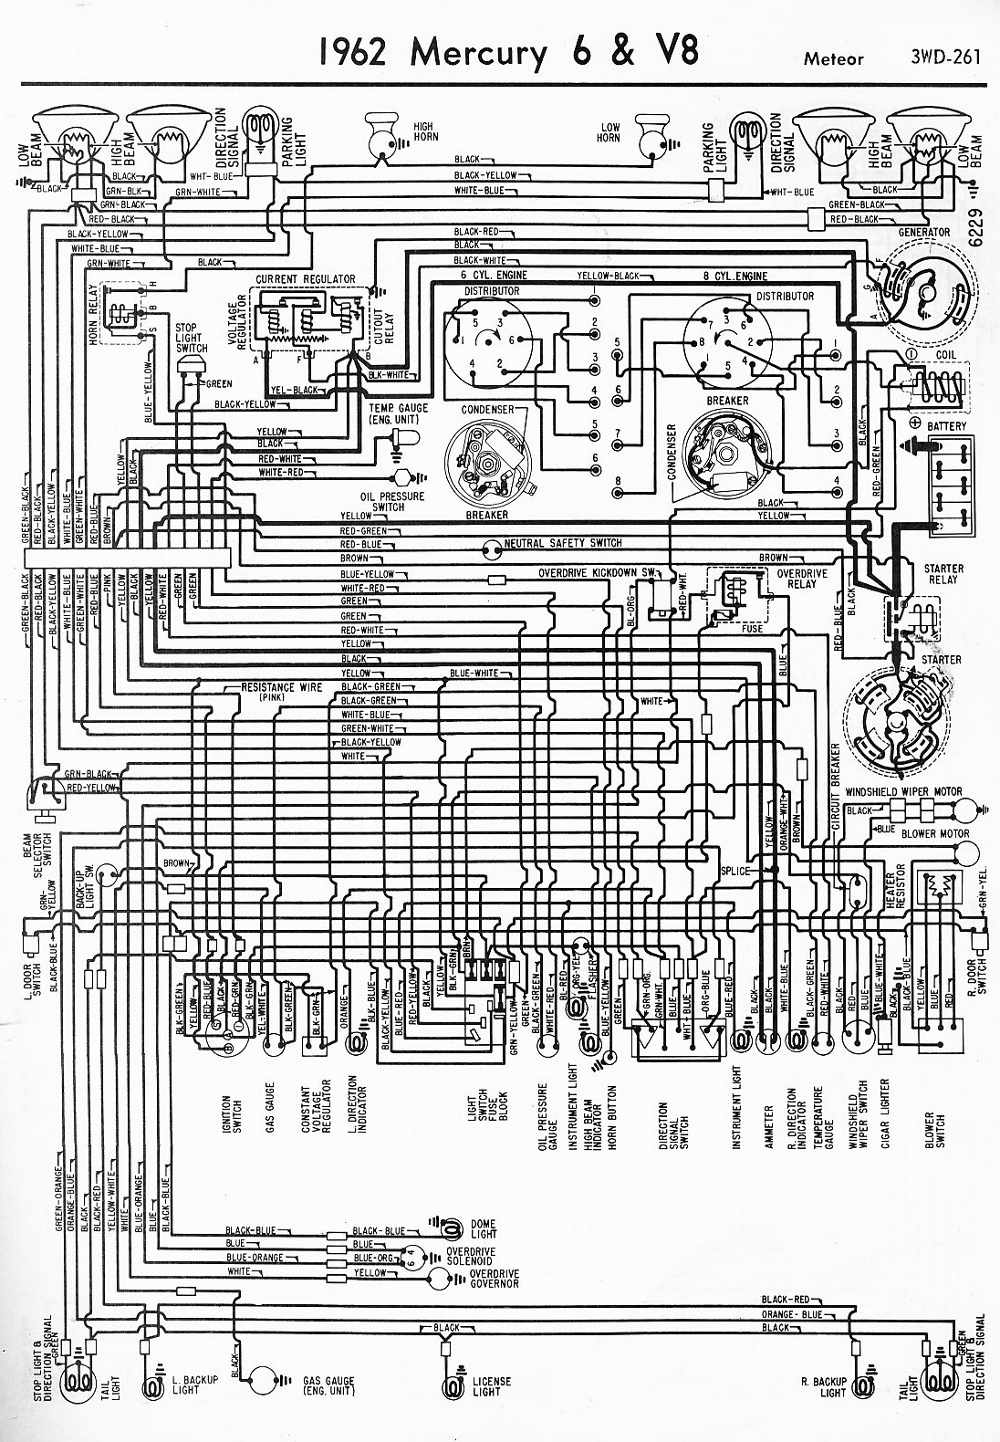 small resolution of 1966 mercury park lane wiring diagram simple wiring post rh 29 asiagourmet igb de 1966 mercury montclair 1968 mercury park lane brougham